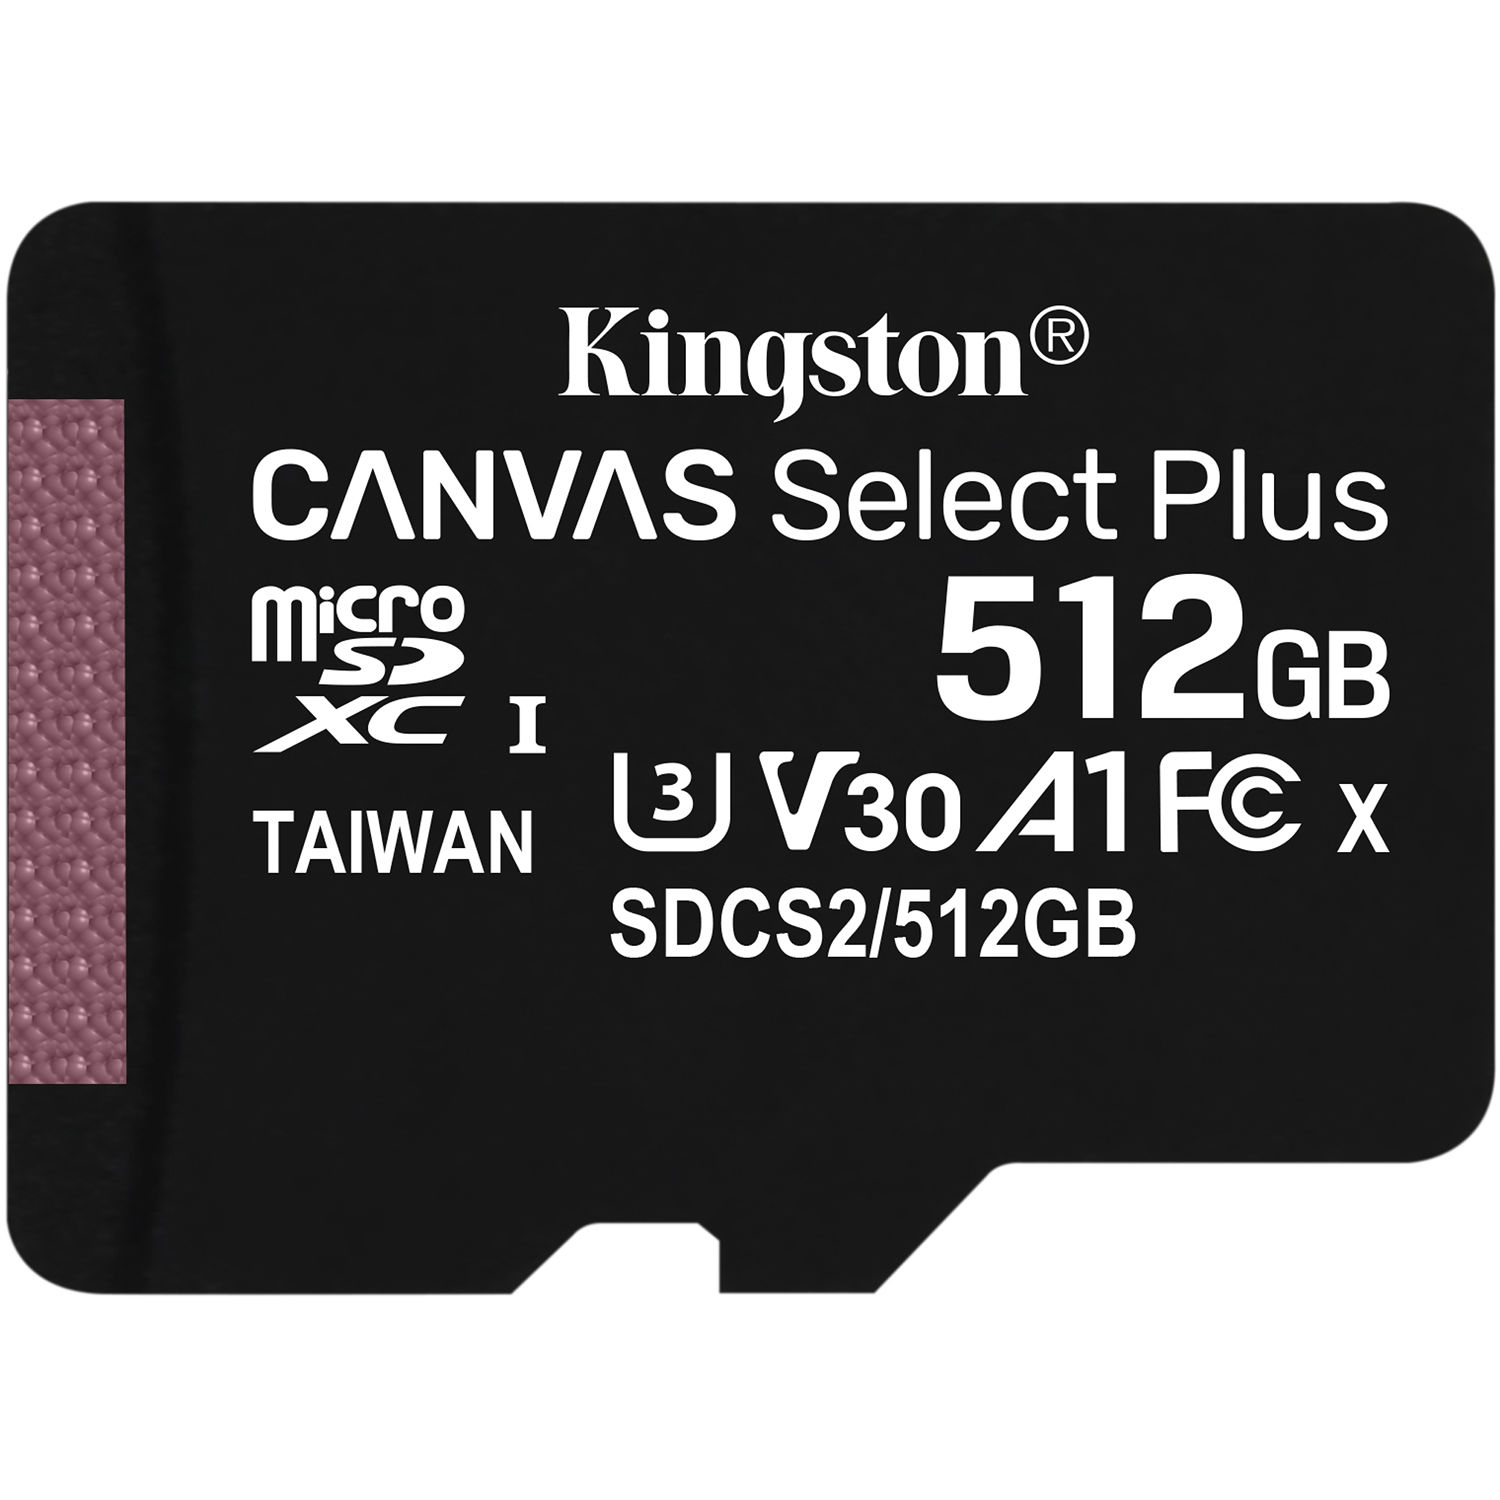 80MBs Works with Kingston Professional Kingston 512GB for CAT S61 MicroSDXC Card Custom Verified by SanFlash.